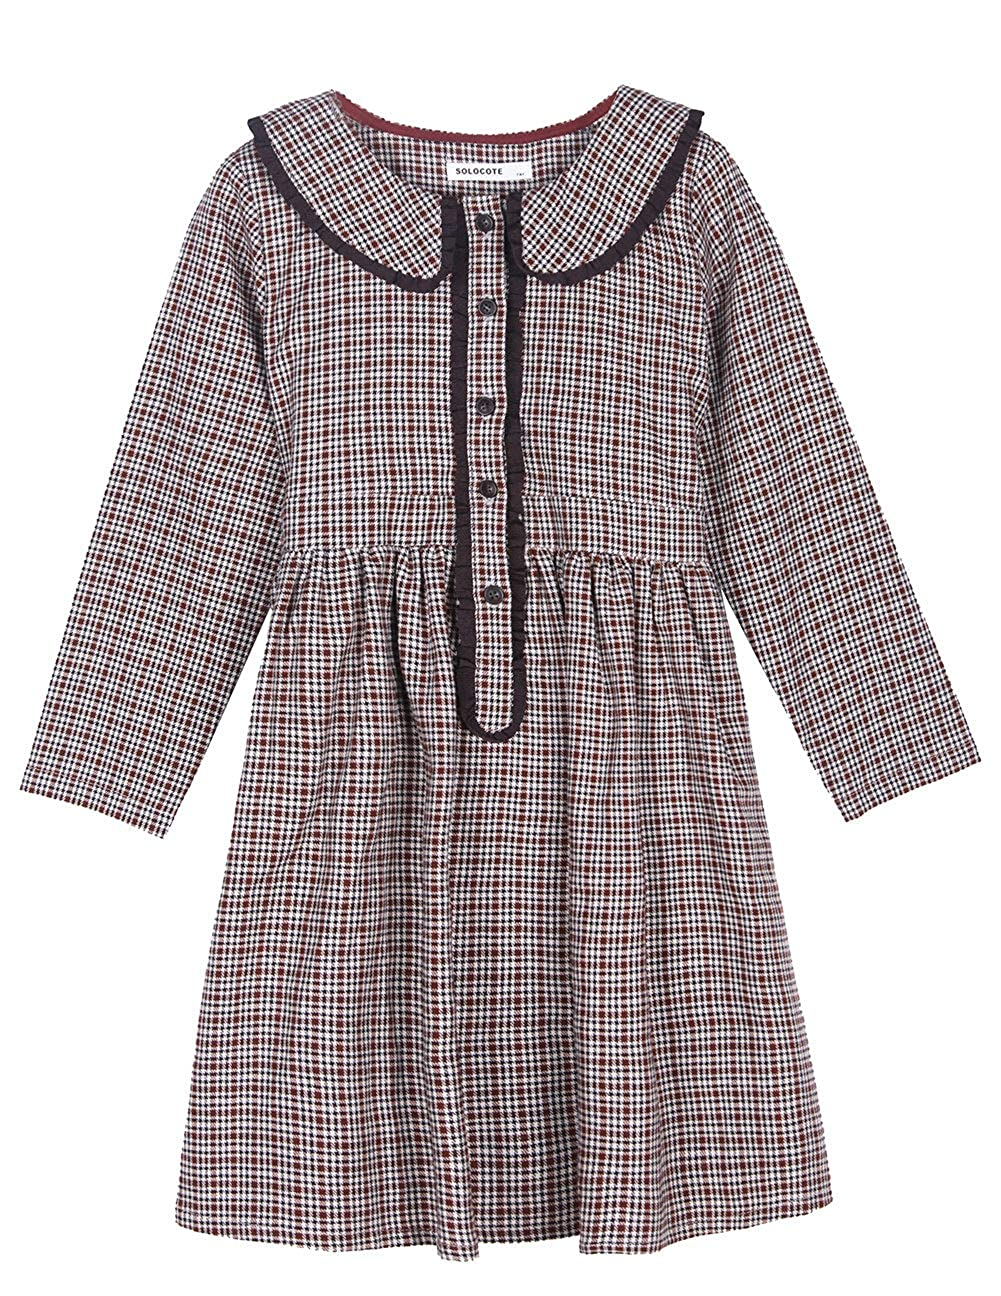 1930s Childrens Fashion: Girls, Boys, Toddler, Baby Costumes SOLOCOTE Girls Plaid Dress Grey Spring Long Sleeve Dresses Peter Pan Collar 3-14Y $25.99 AT vintagedancer.com